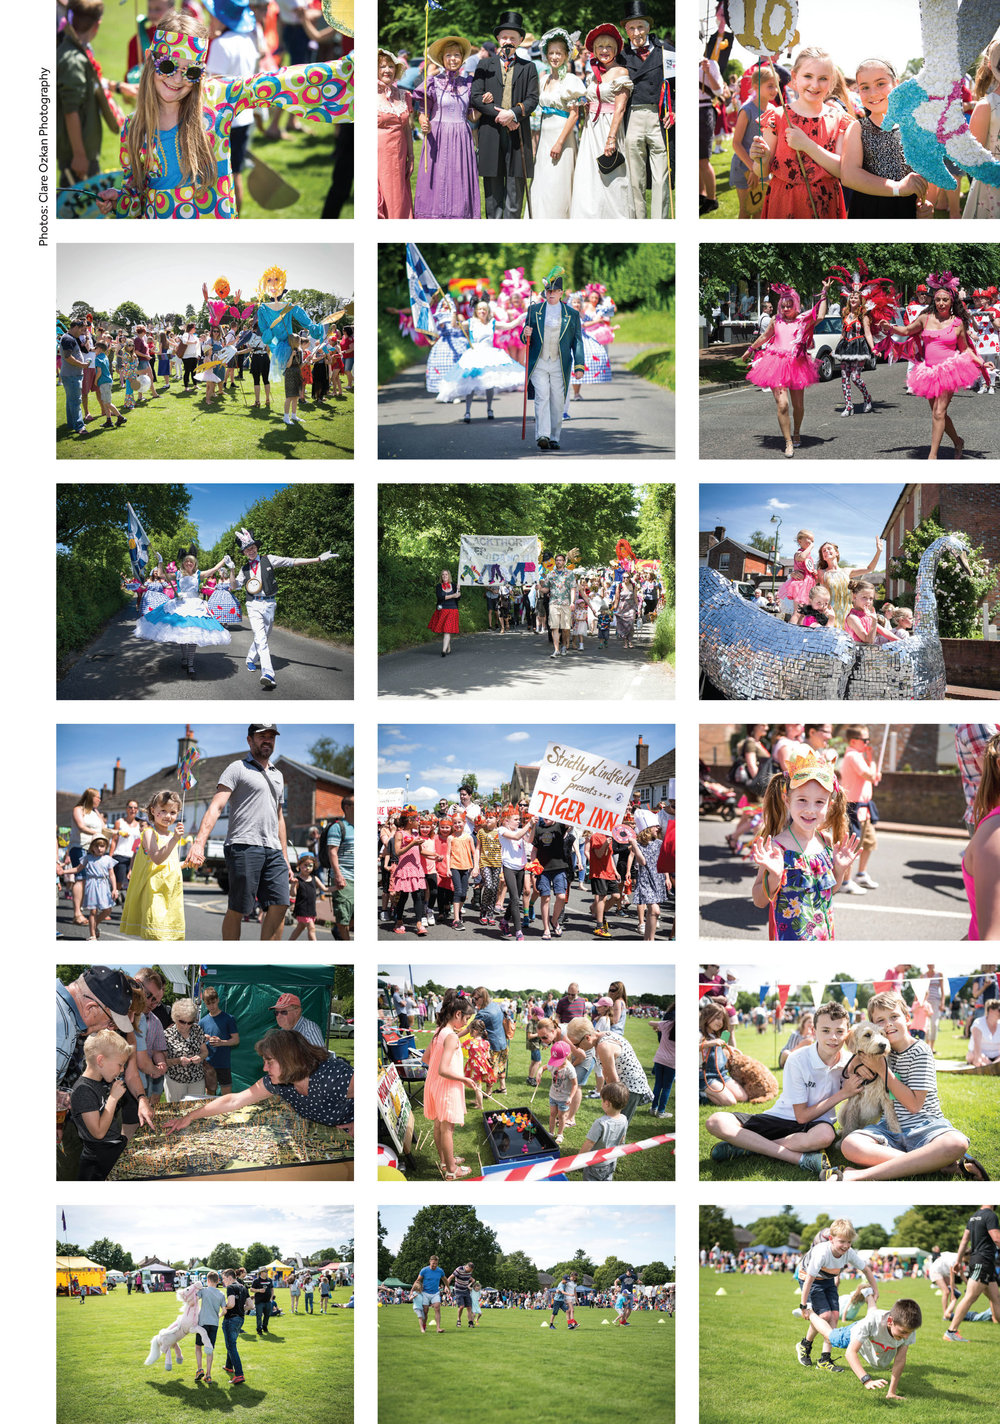 LindfieldLife-Village-Day-2017-Clare-Ozkan-photos.jpg